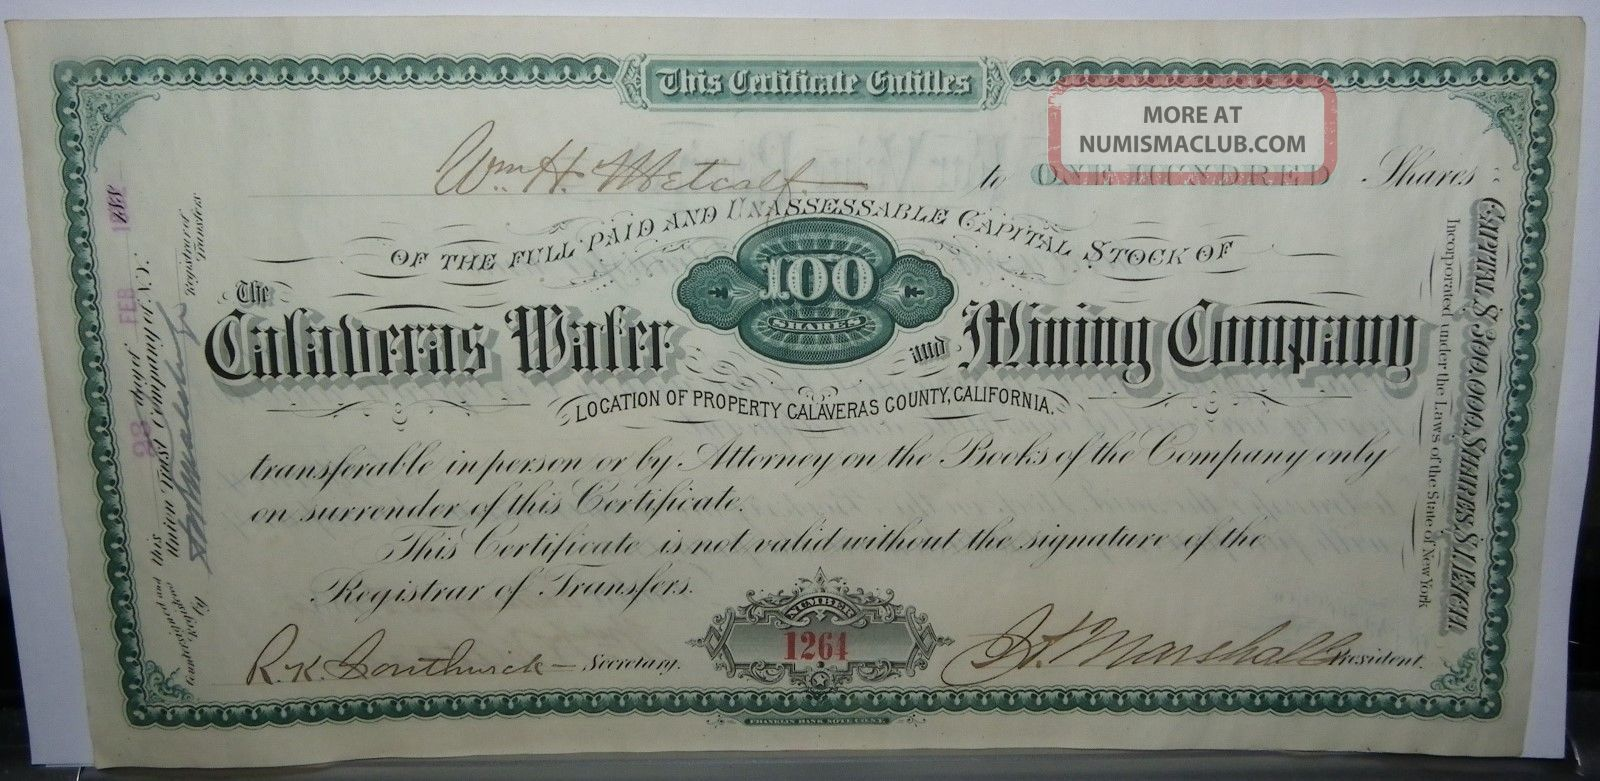 1882 Dated Certificate For 100 Shares In The Calaveras Water & Mining Co.  - Issued Stocks & Bonds, Scripophily photo